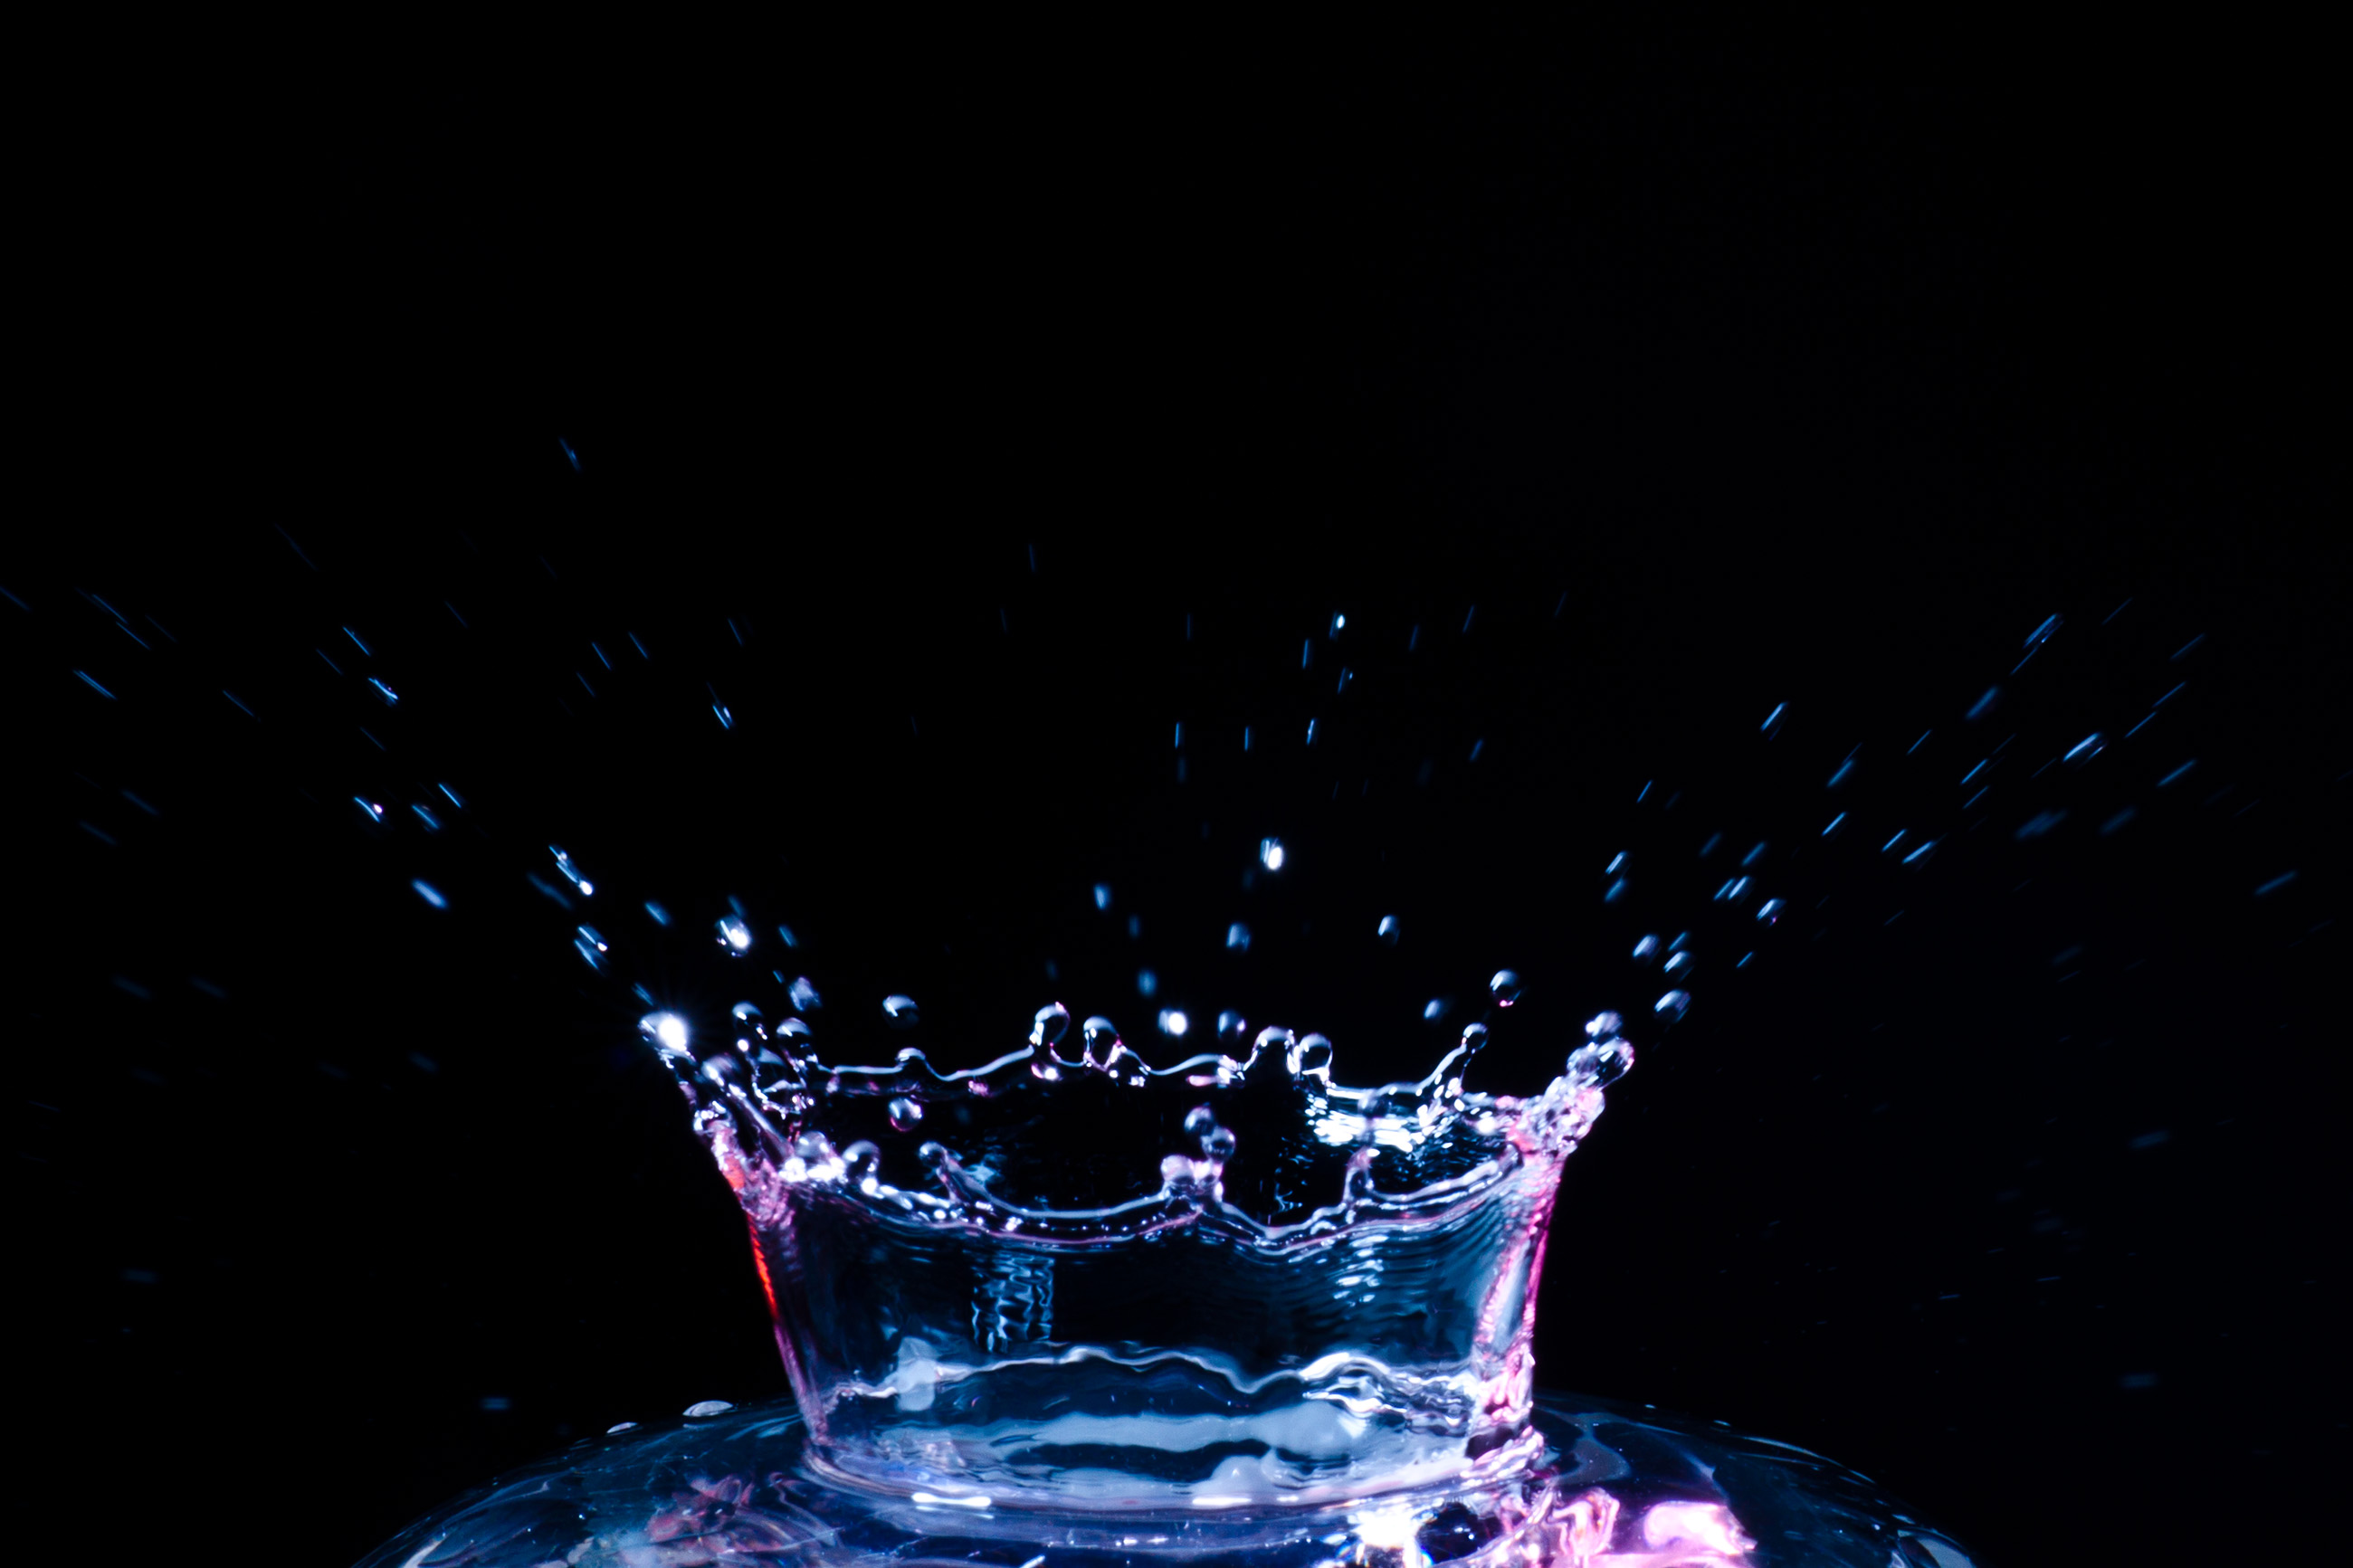 Water Splash, Abstract, Image, Wave, Water, HQ Photo